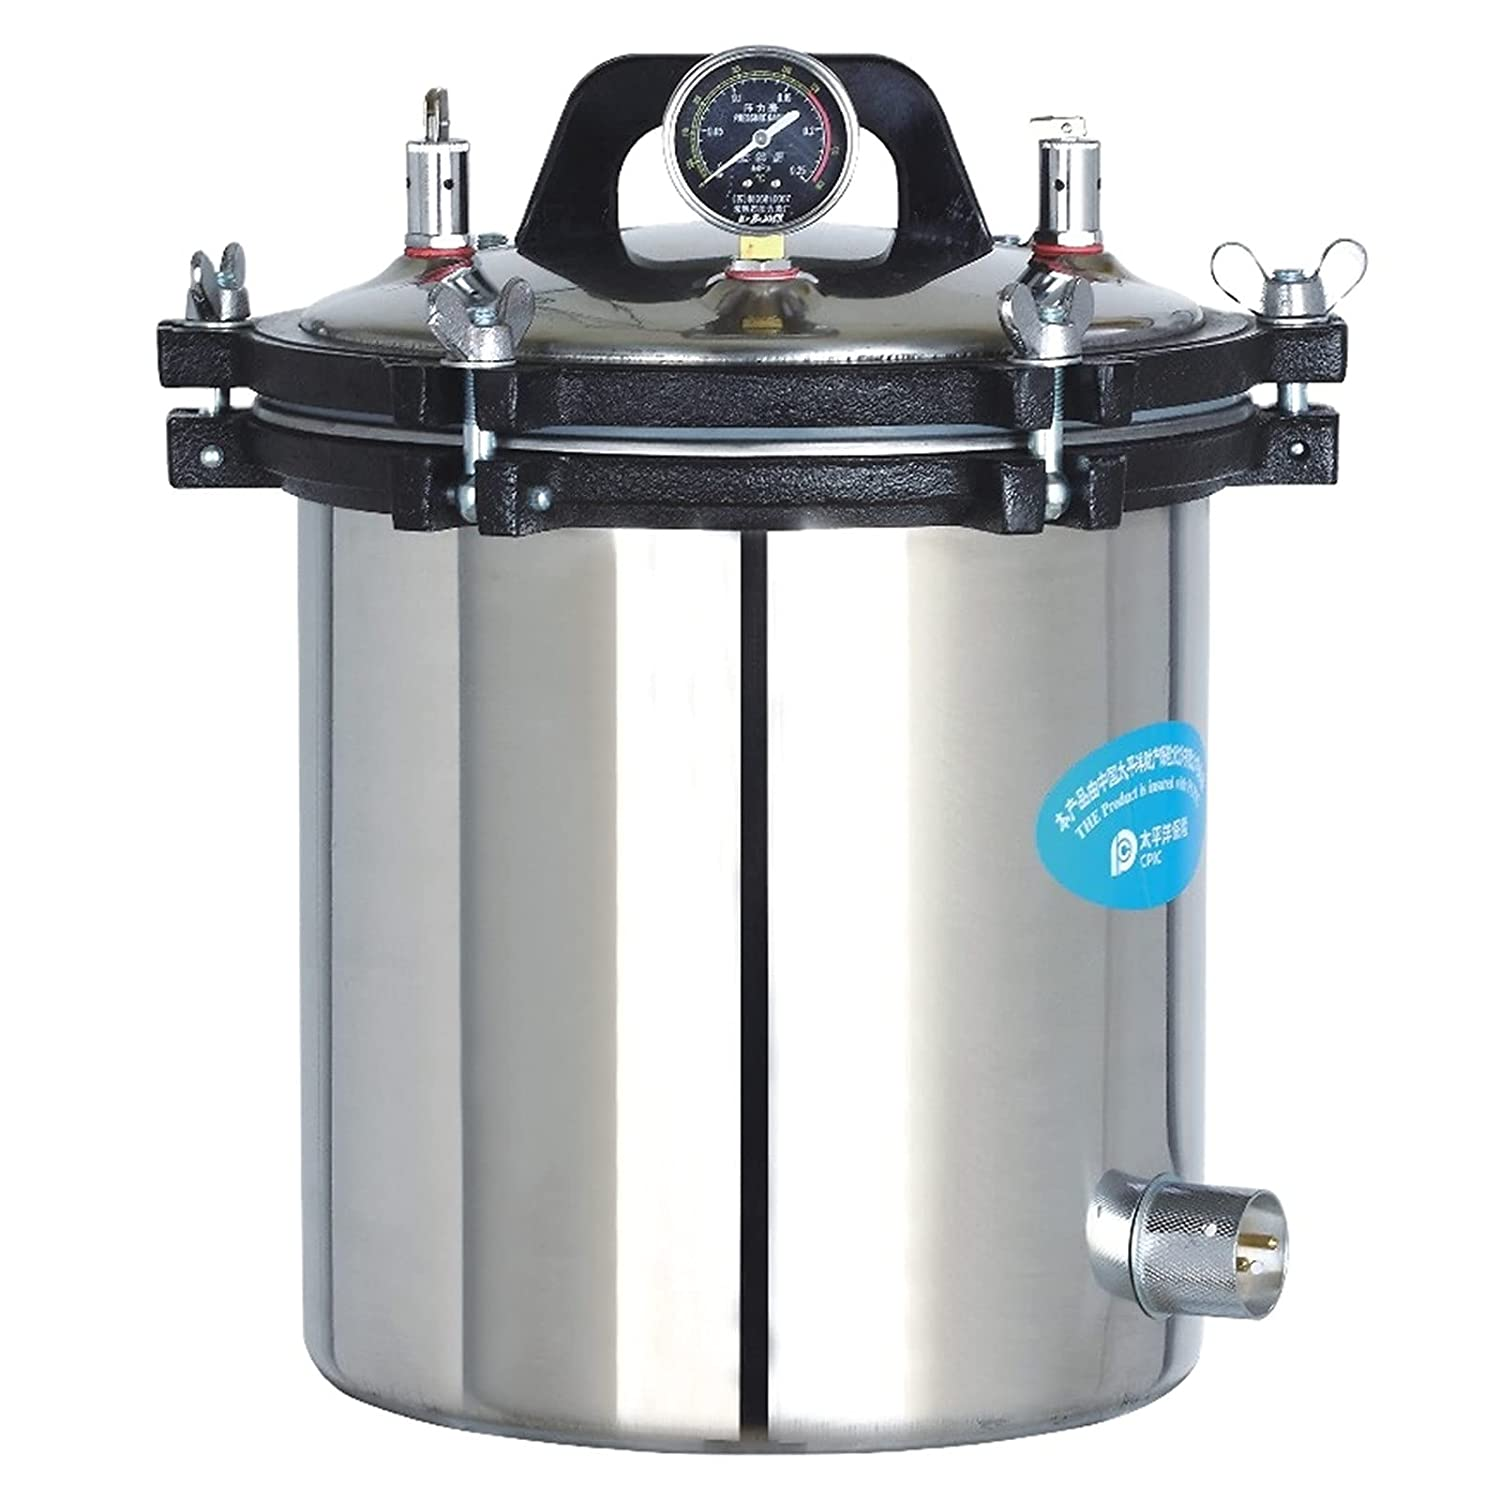 18L Portable Stainless Steel Steam Pressure In a popularity OFFicial store Sterilizer Autoclave